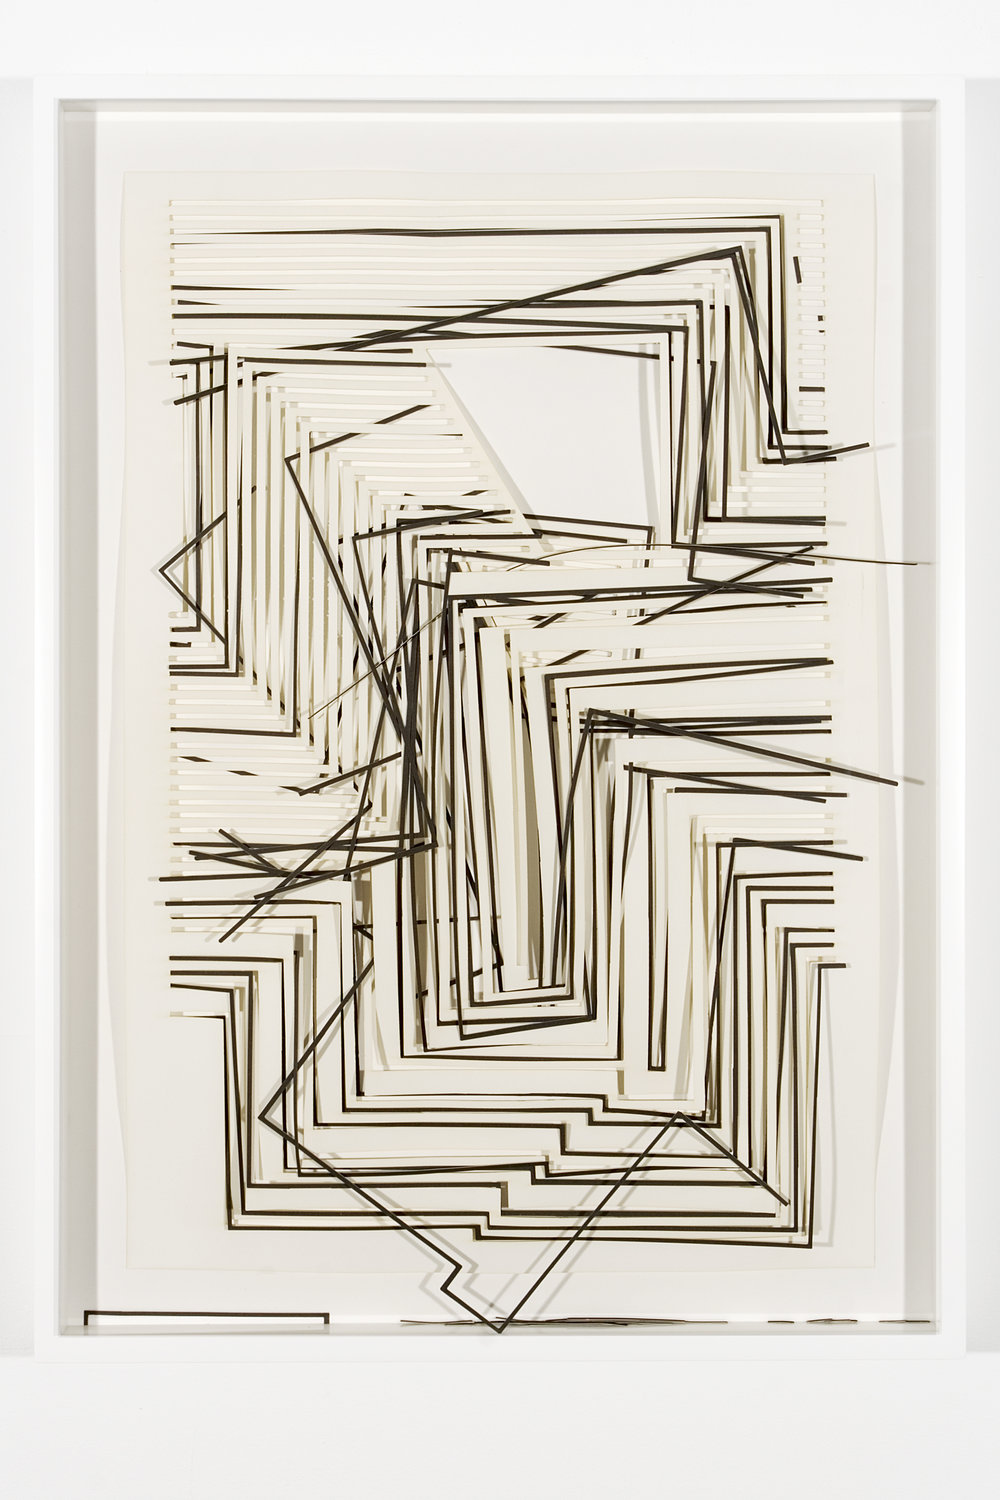 """Collapsed Drawing: """"Graphic Tectonic III"""" (Josef Albers), 2007 laser-cut paper and laser-cut archival digital print mounted on museum board 76,5 x 55,3 cm - 30 1/8 x 21 3/4 inches (framed)"""